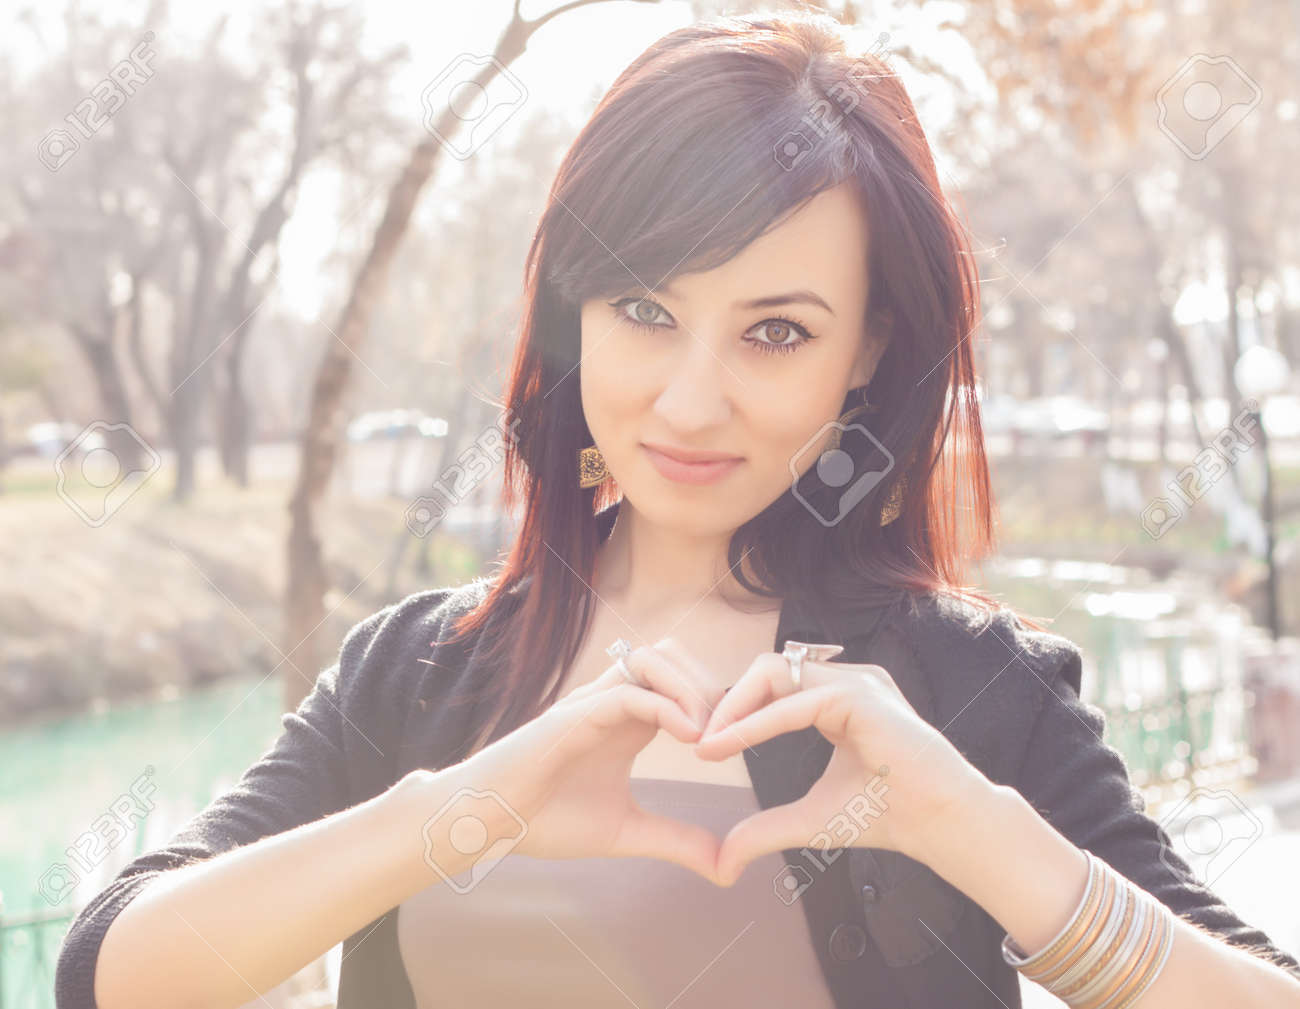 young beautiful smile with hands form heart shape gesture